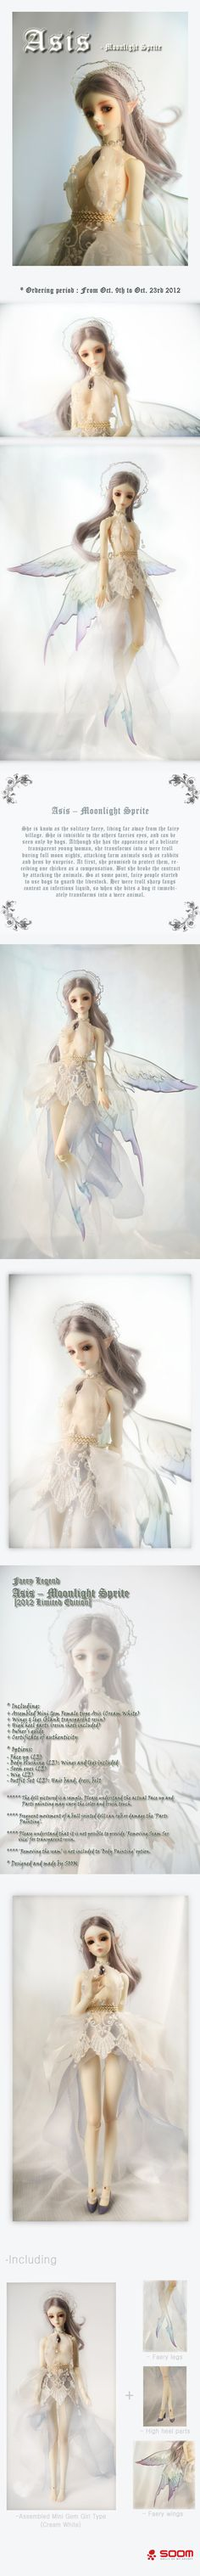 Asis Moonlight Sprite -- the SOOM emporium I WANT HER!! So gorgeous,  and such a sad story. :(